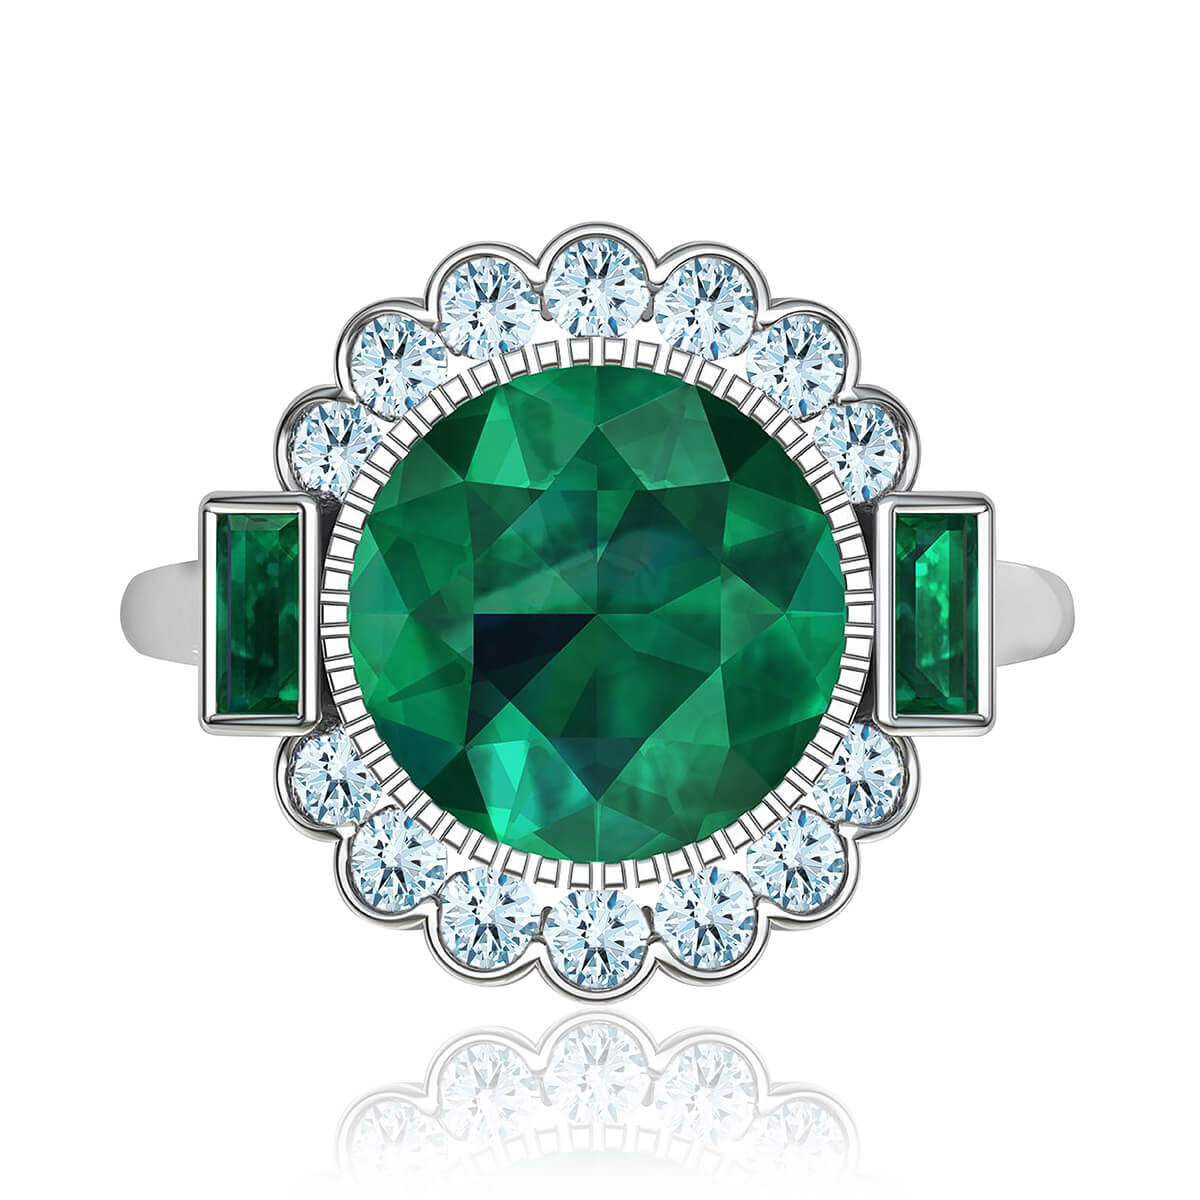 Milagrosa Emerald & Diamond Ring